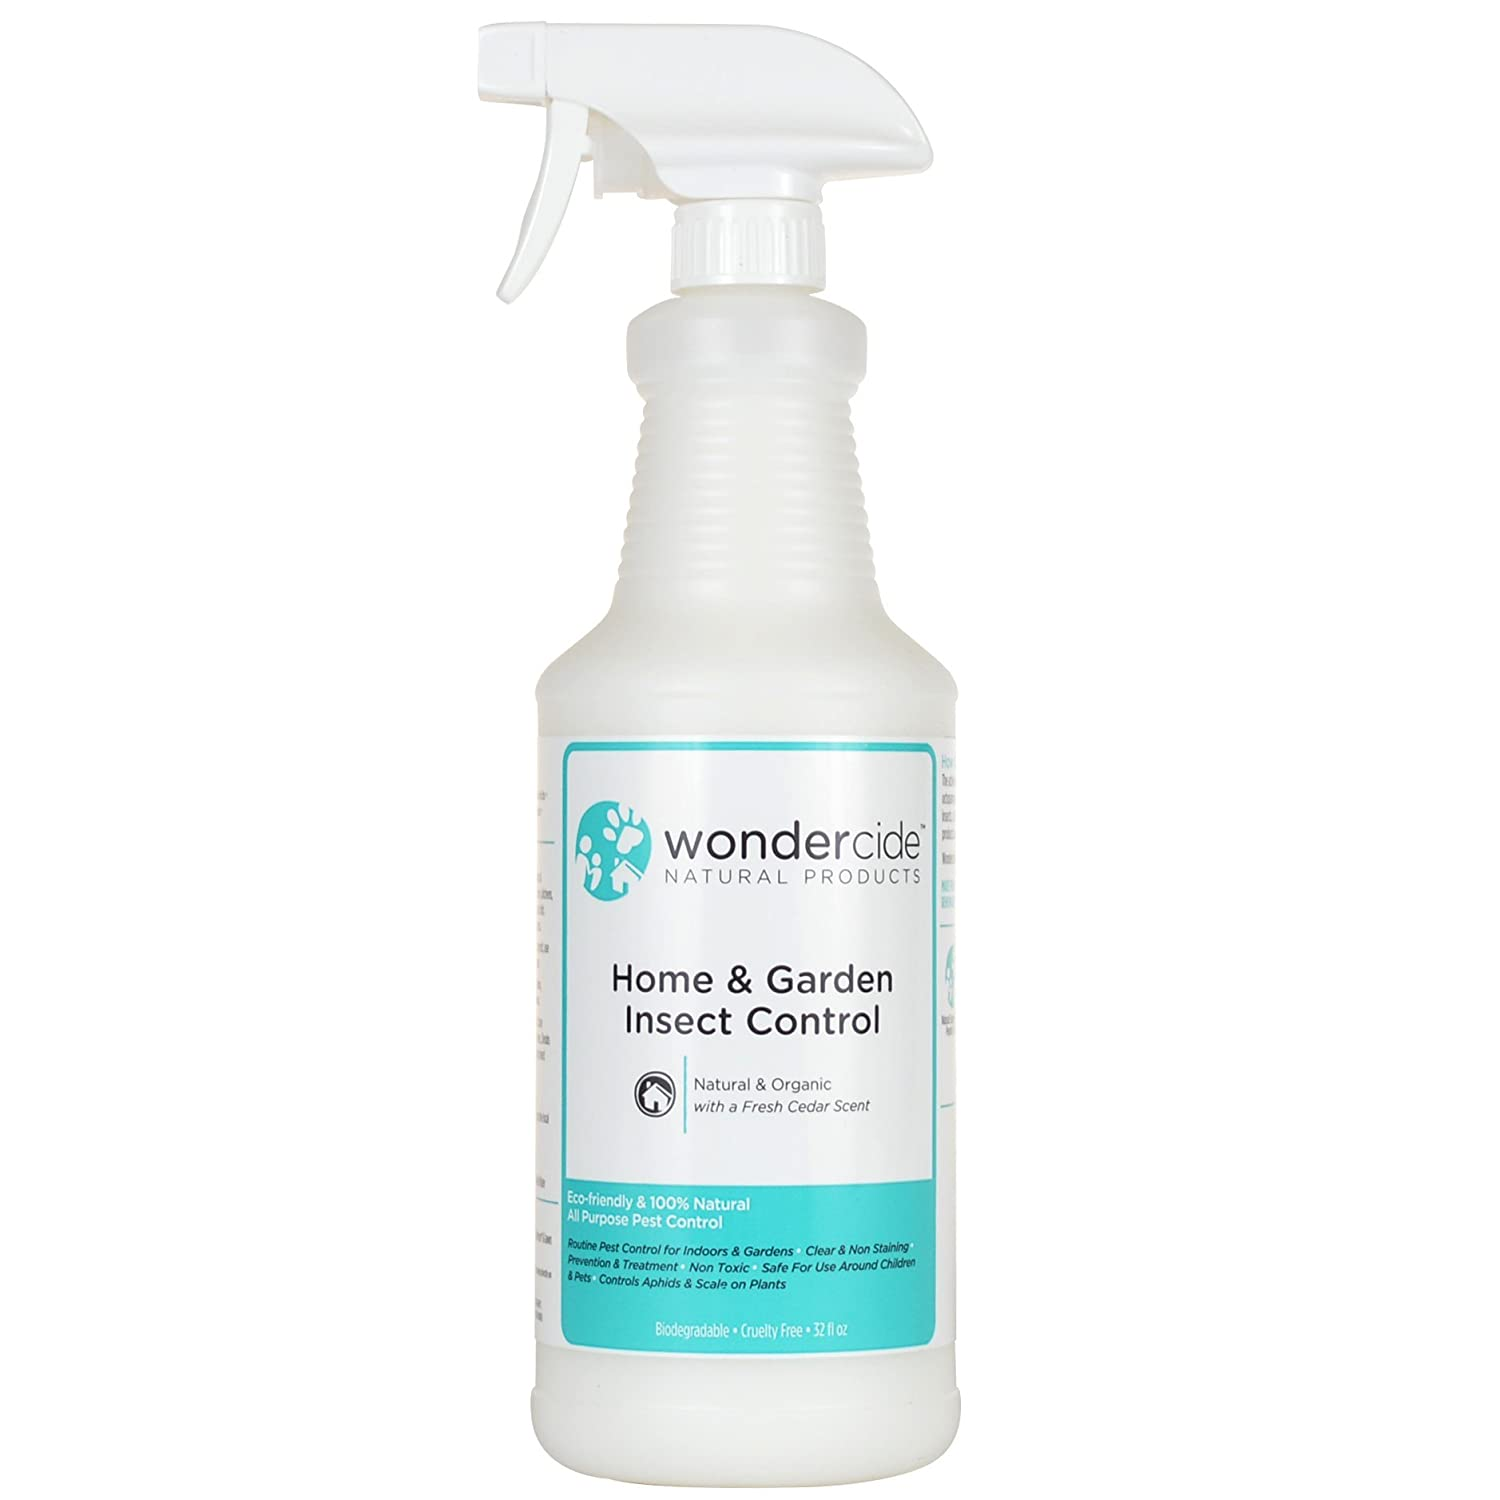 Wondercide All-Purpose Organic Home & Garden Insect Control Spray Review